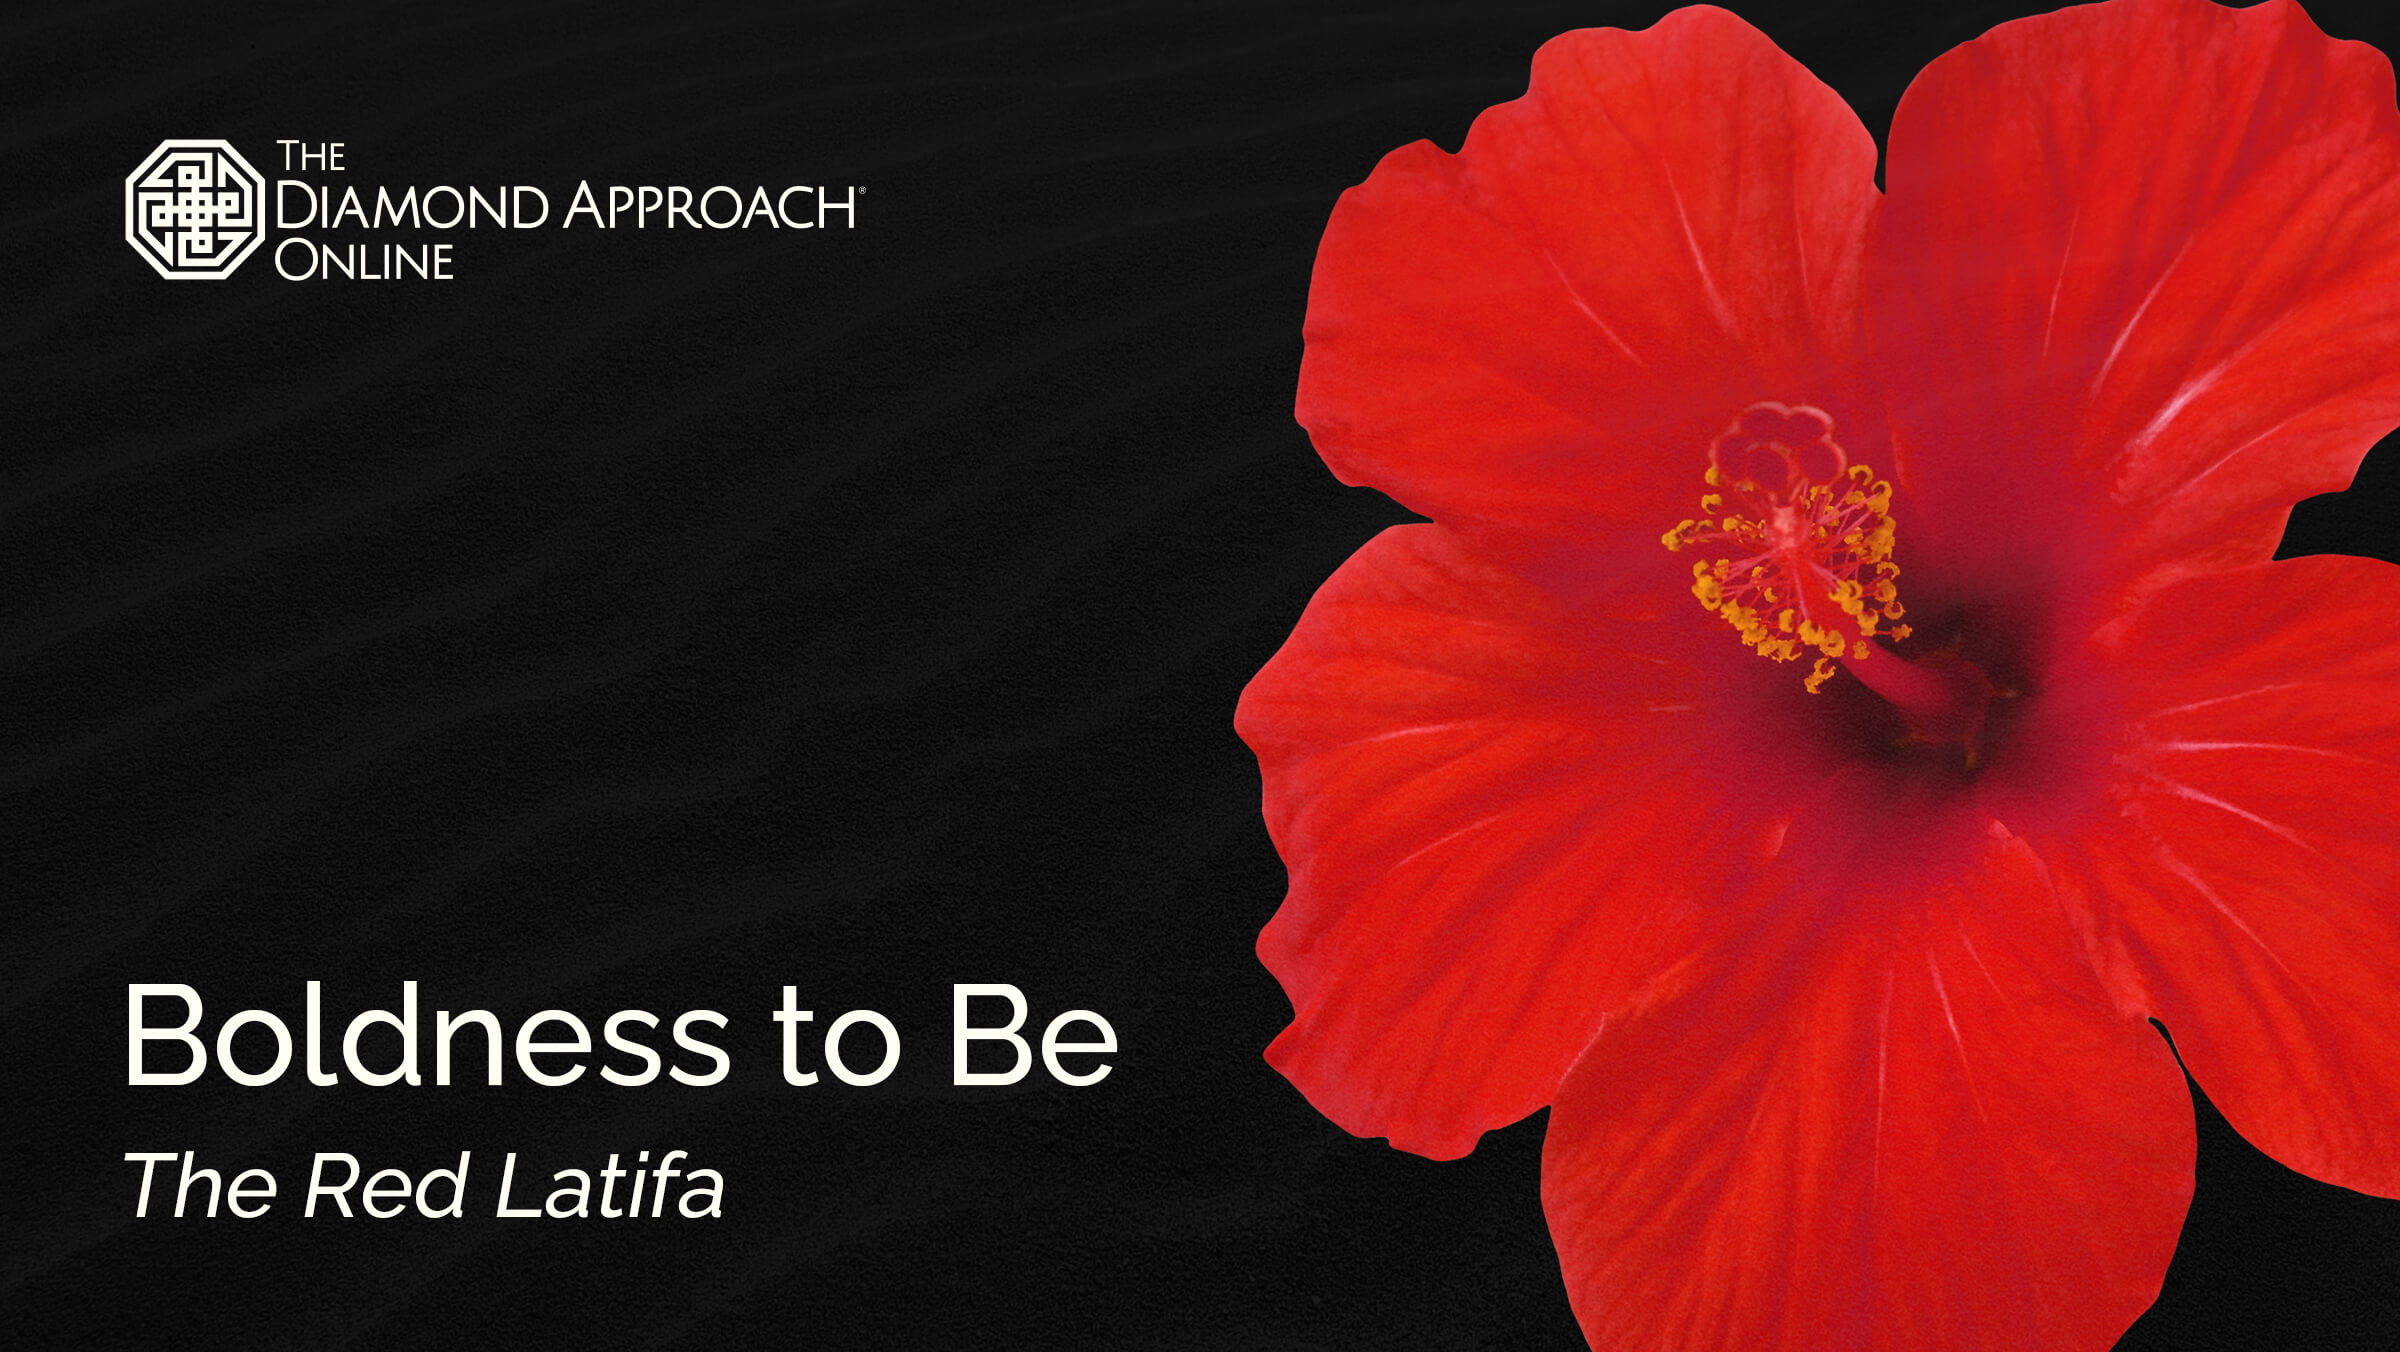 Boldness to Be: The Red Latifa